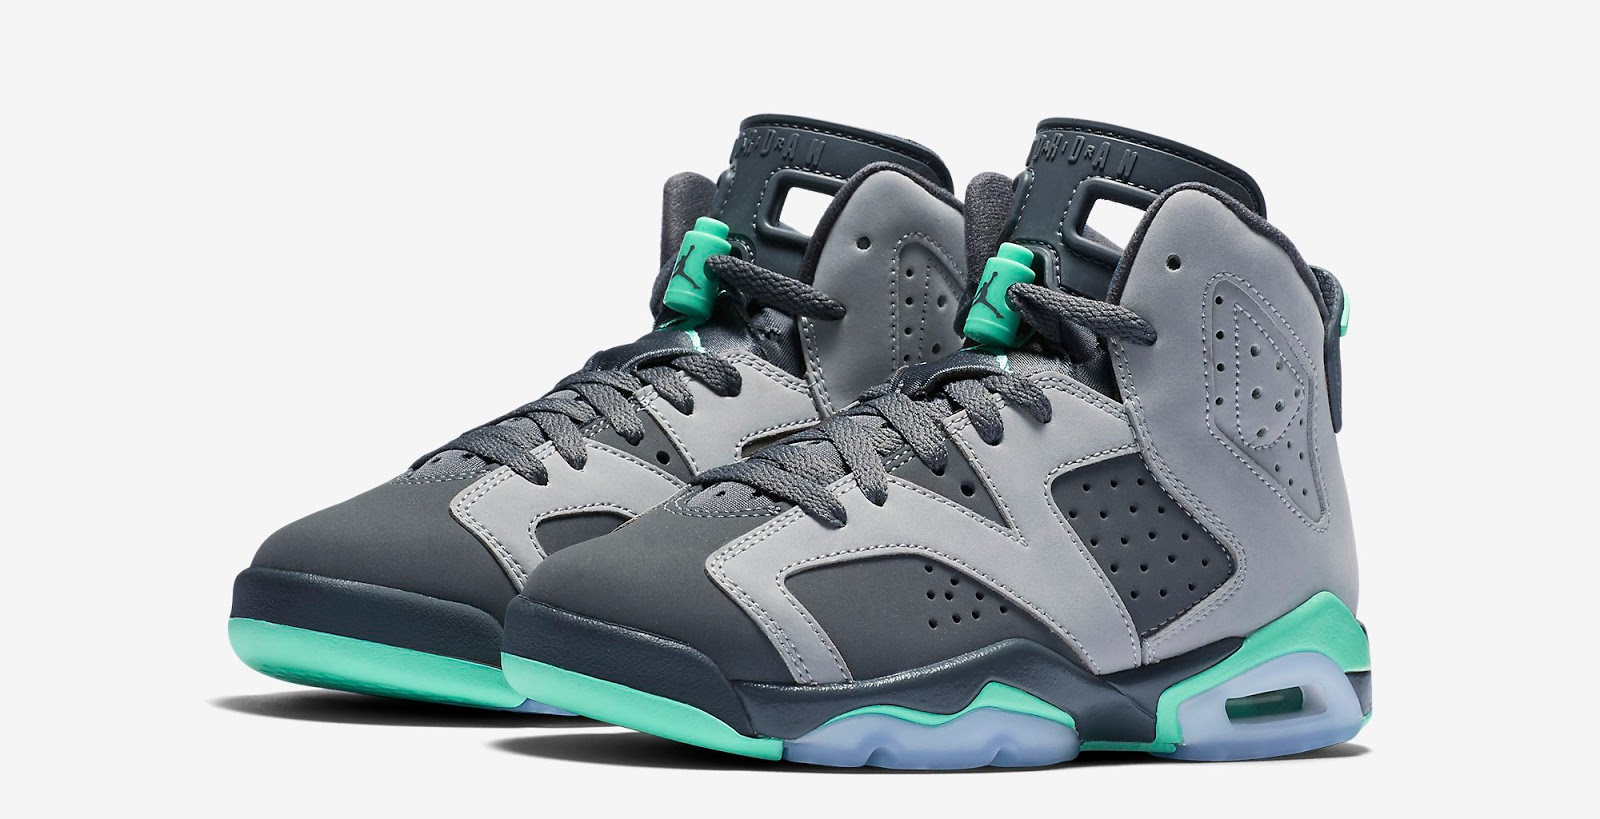 on sale 11aeb 3d89a ajordanxi Your  1 Source For Sneaker Release Dates  Girls Air Jordan 6 Retro  GG Cement Grey Green Glow-Dark Grey-Green Glow Release Reminder